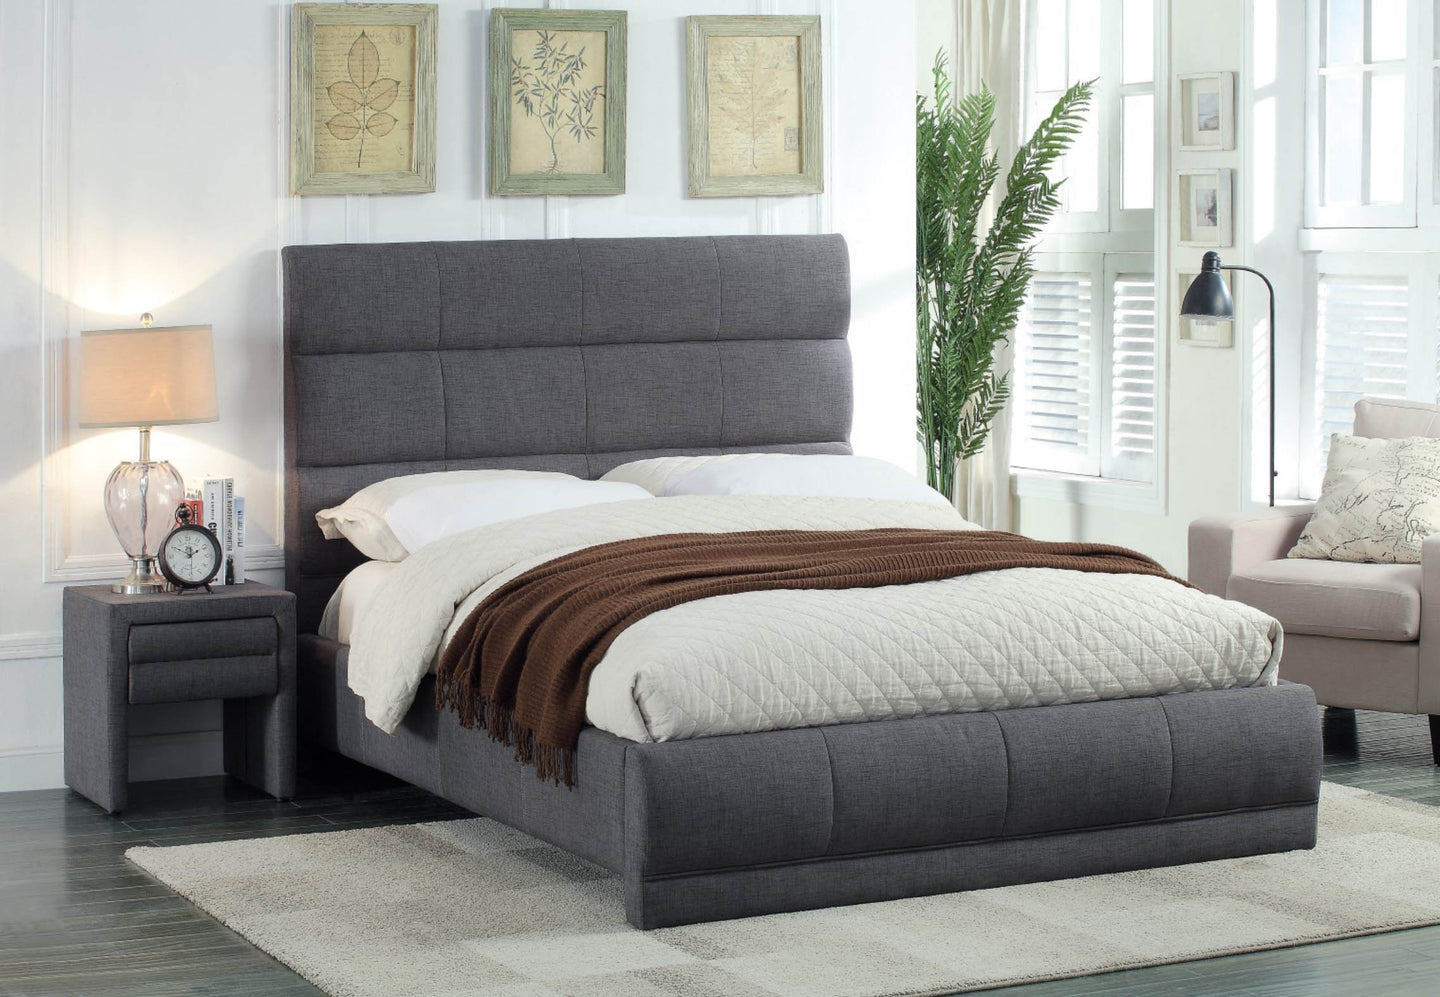 Fabric Bed frame